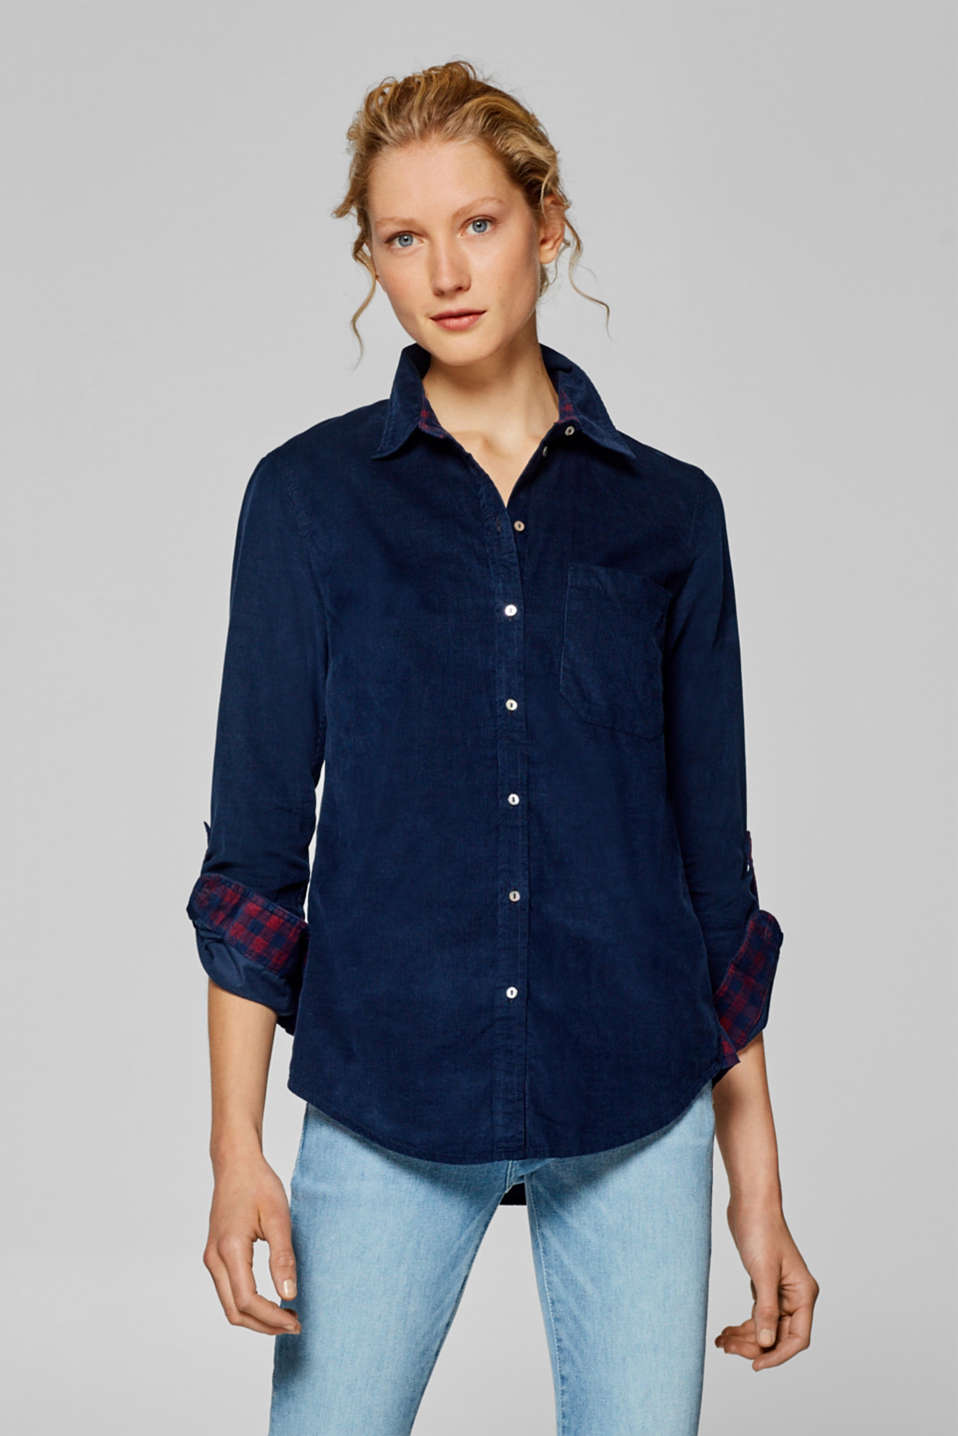 Esprit - Shirt blouse in needlecord, 100% cotton